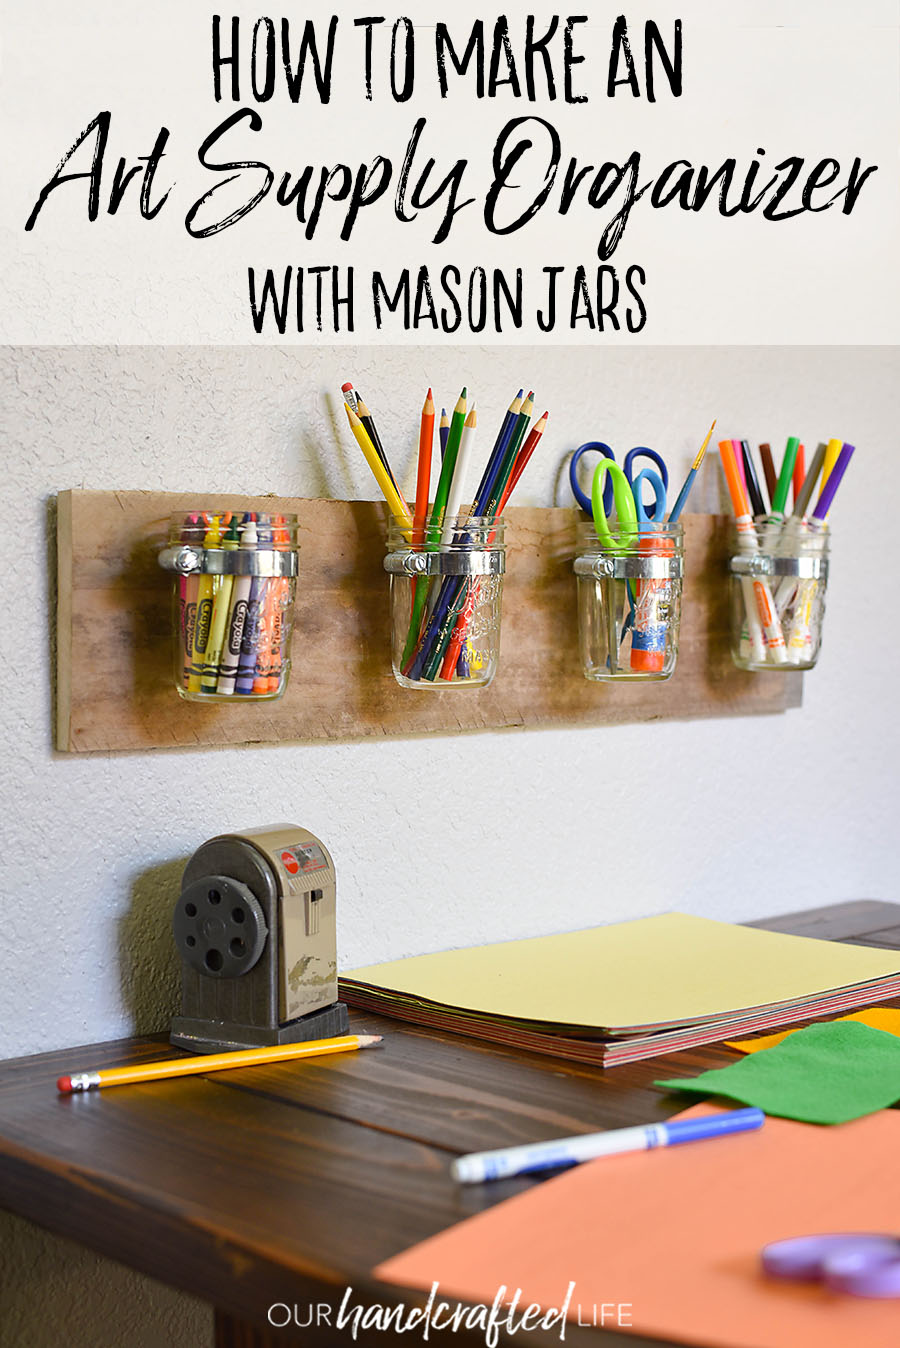 Diy Mason Jar Art Supply Organizer For Kids Our Handcrafted Life